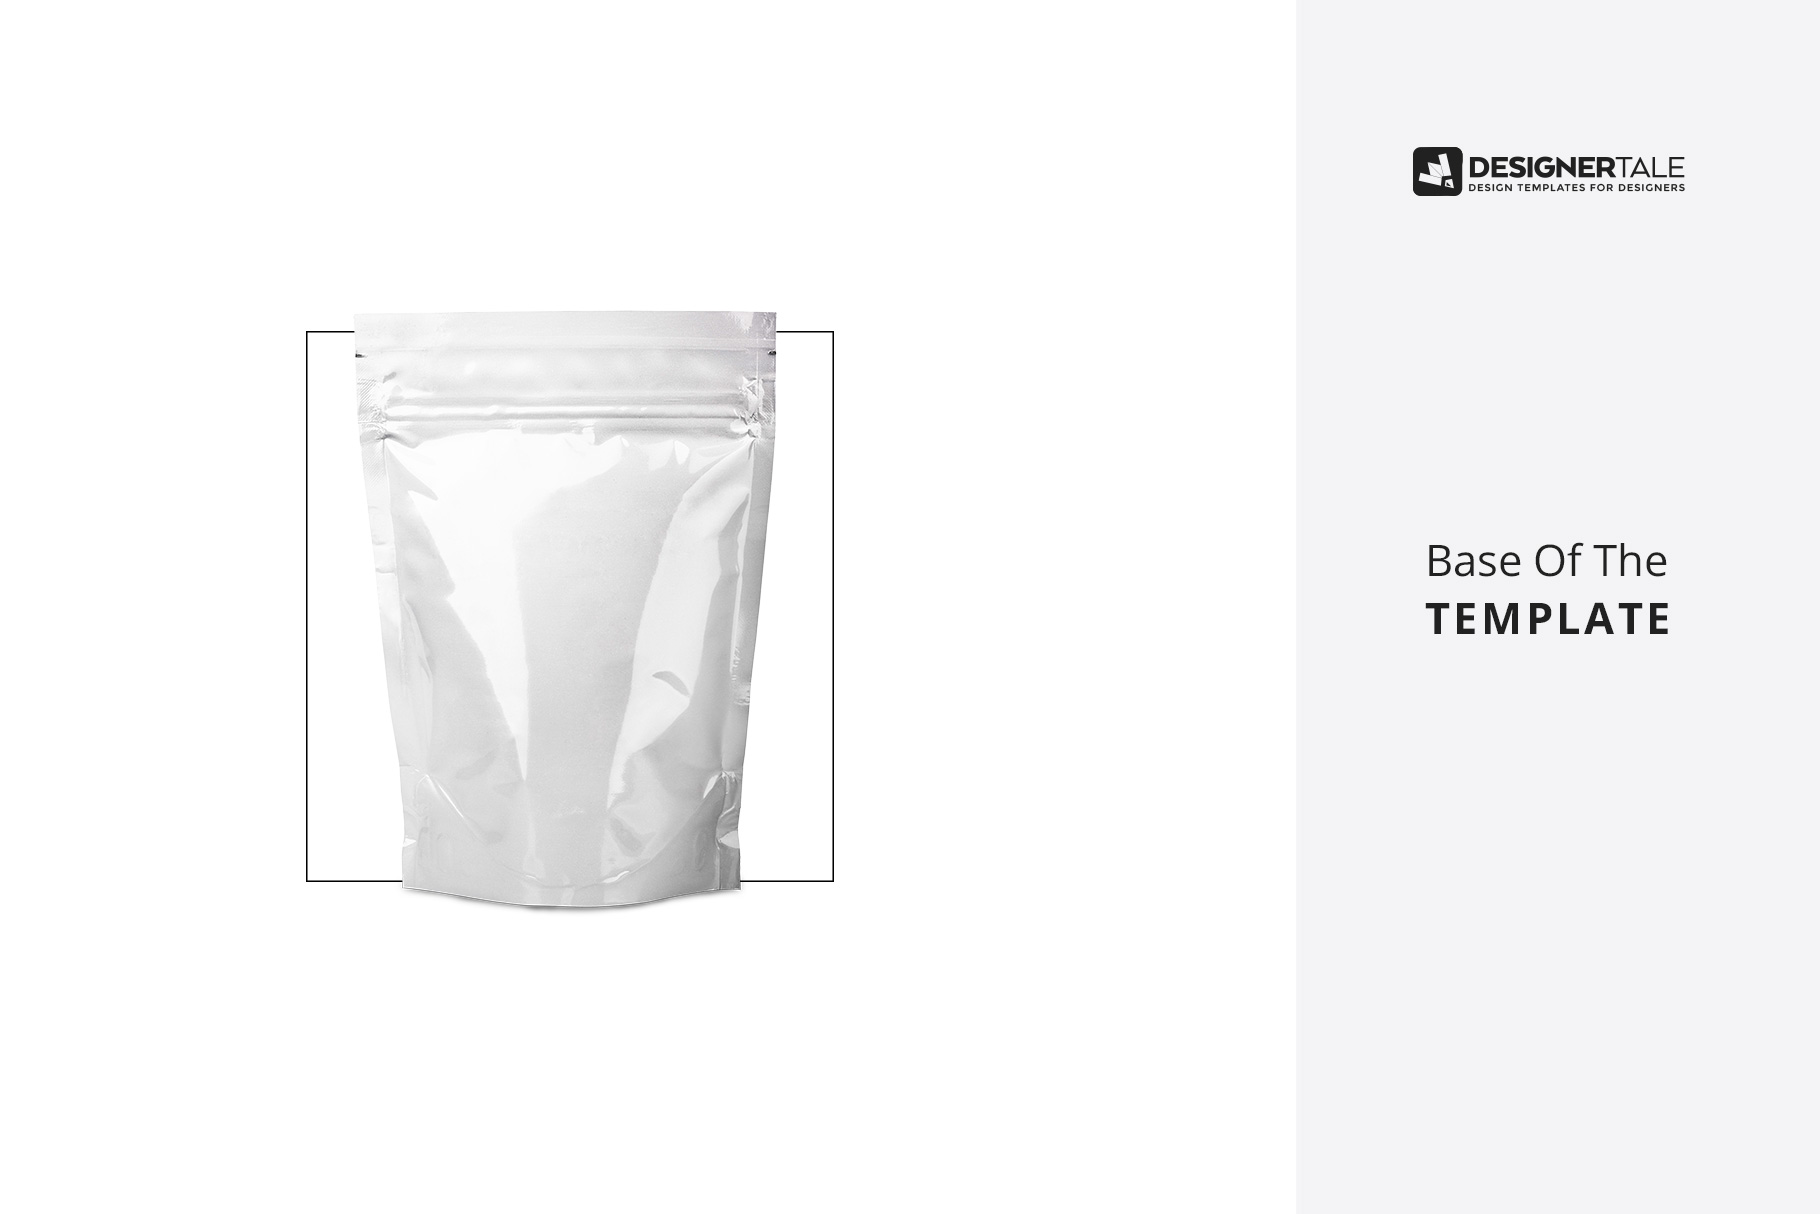 doy pack pouch mockup raw template image